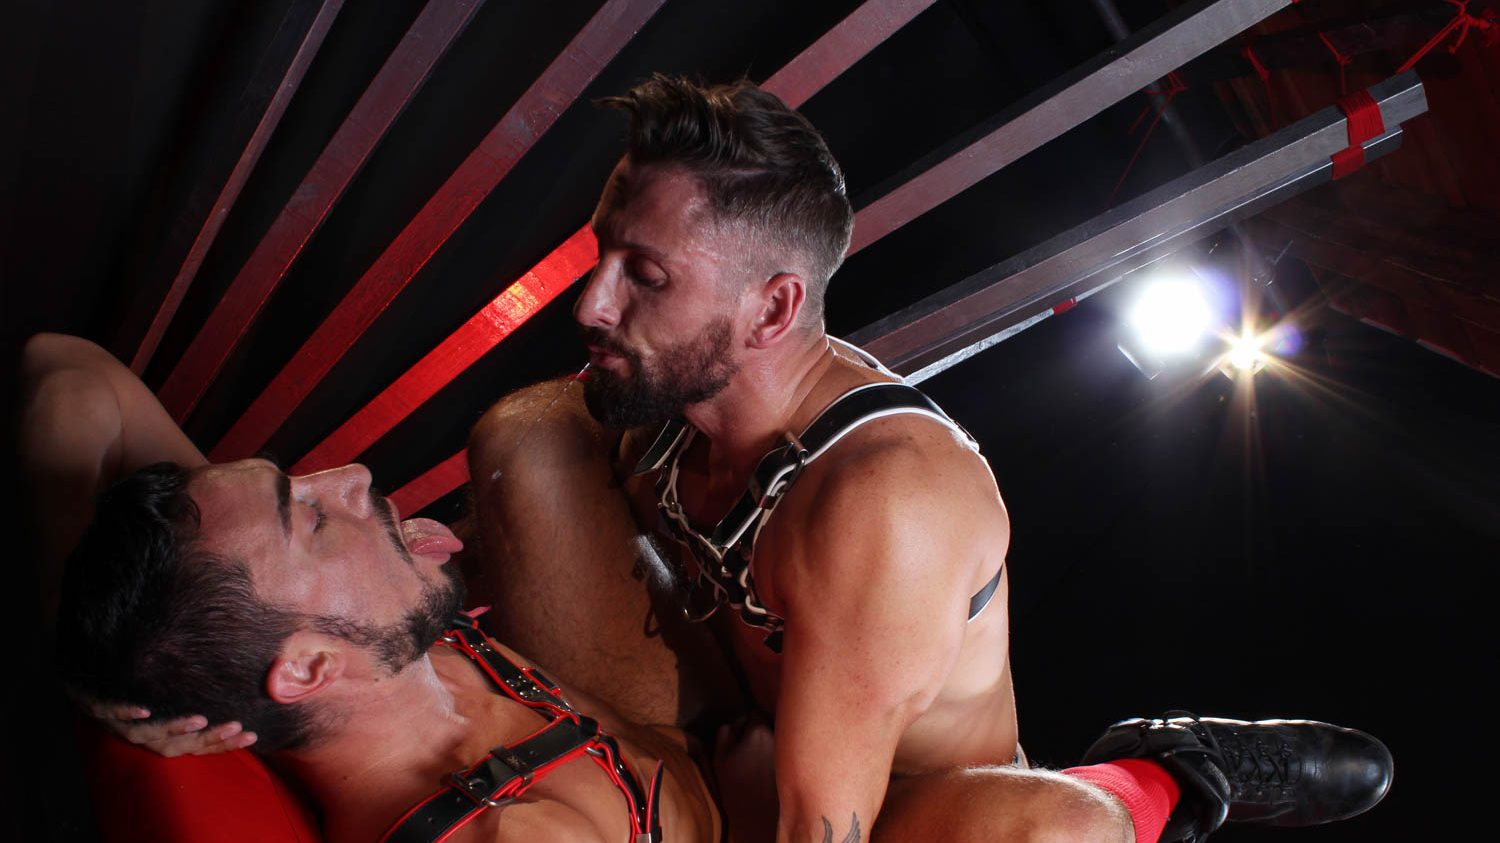 Leather Guys: Nick North and Gaston Croupier